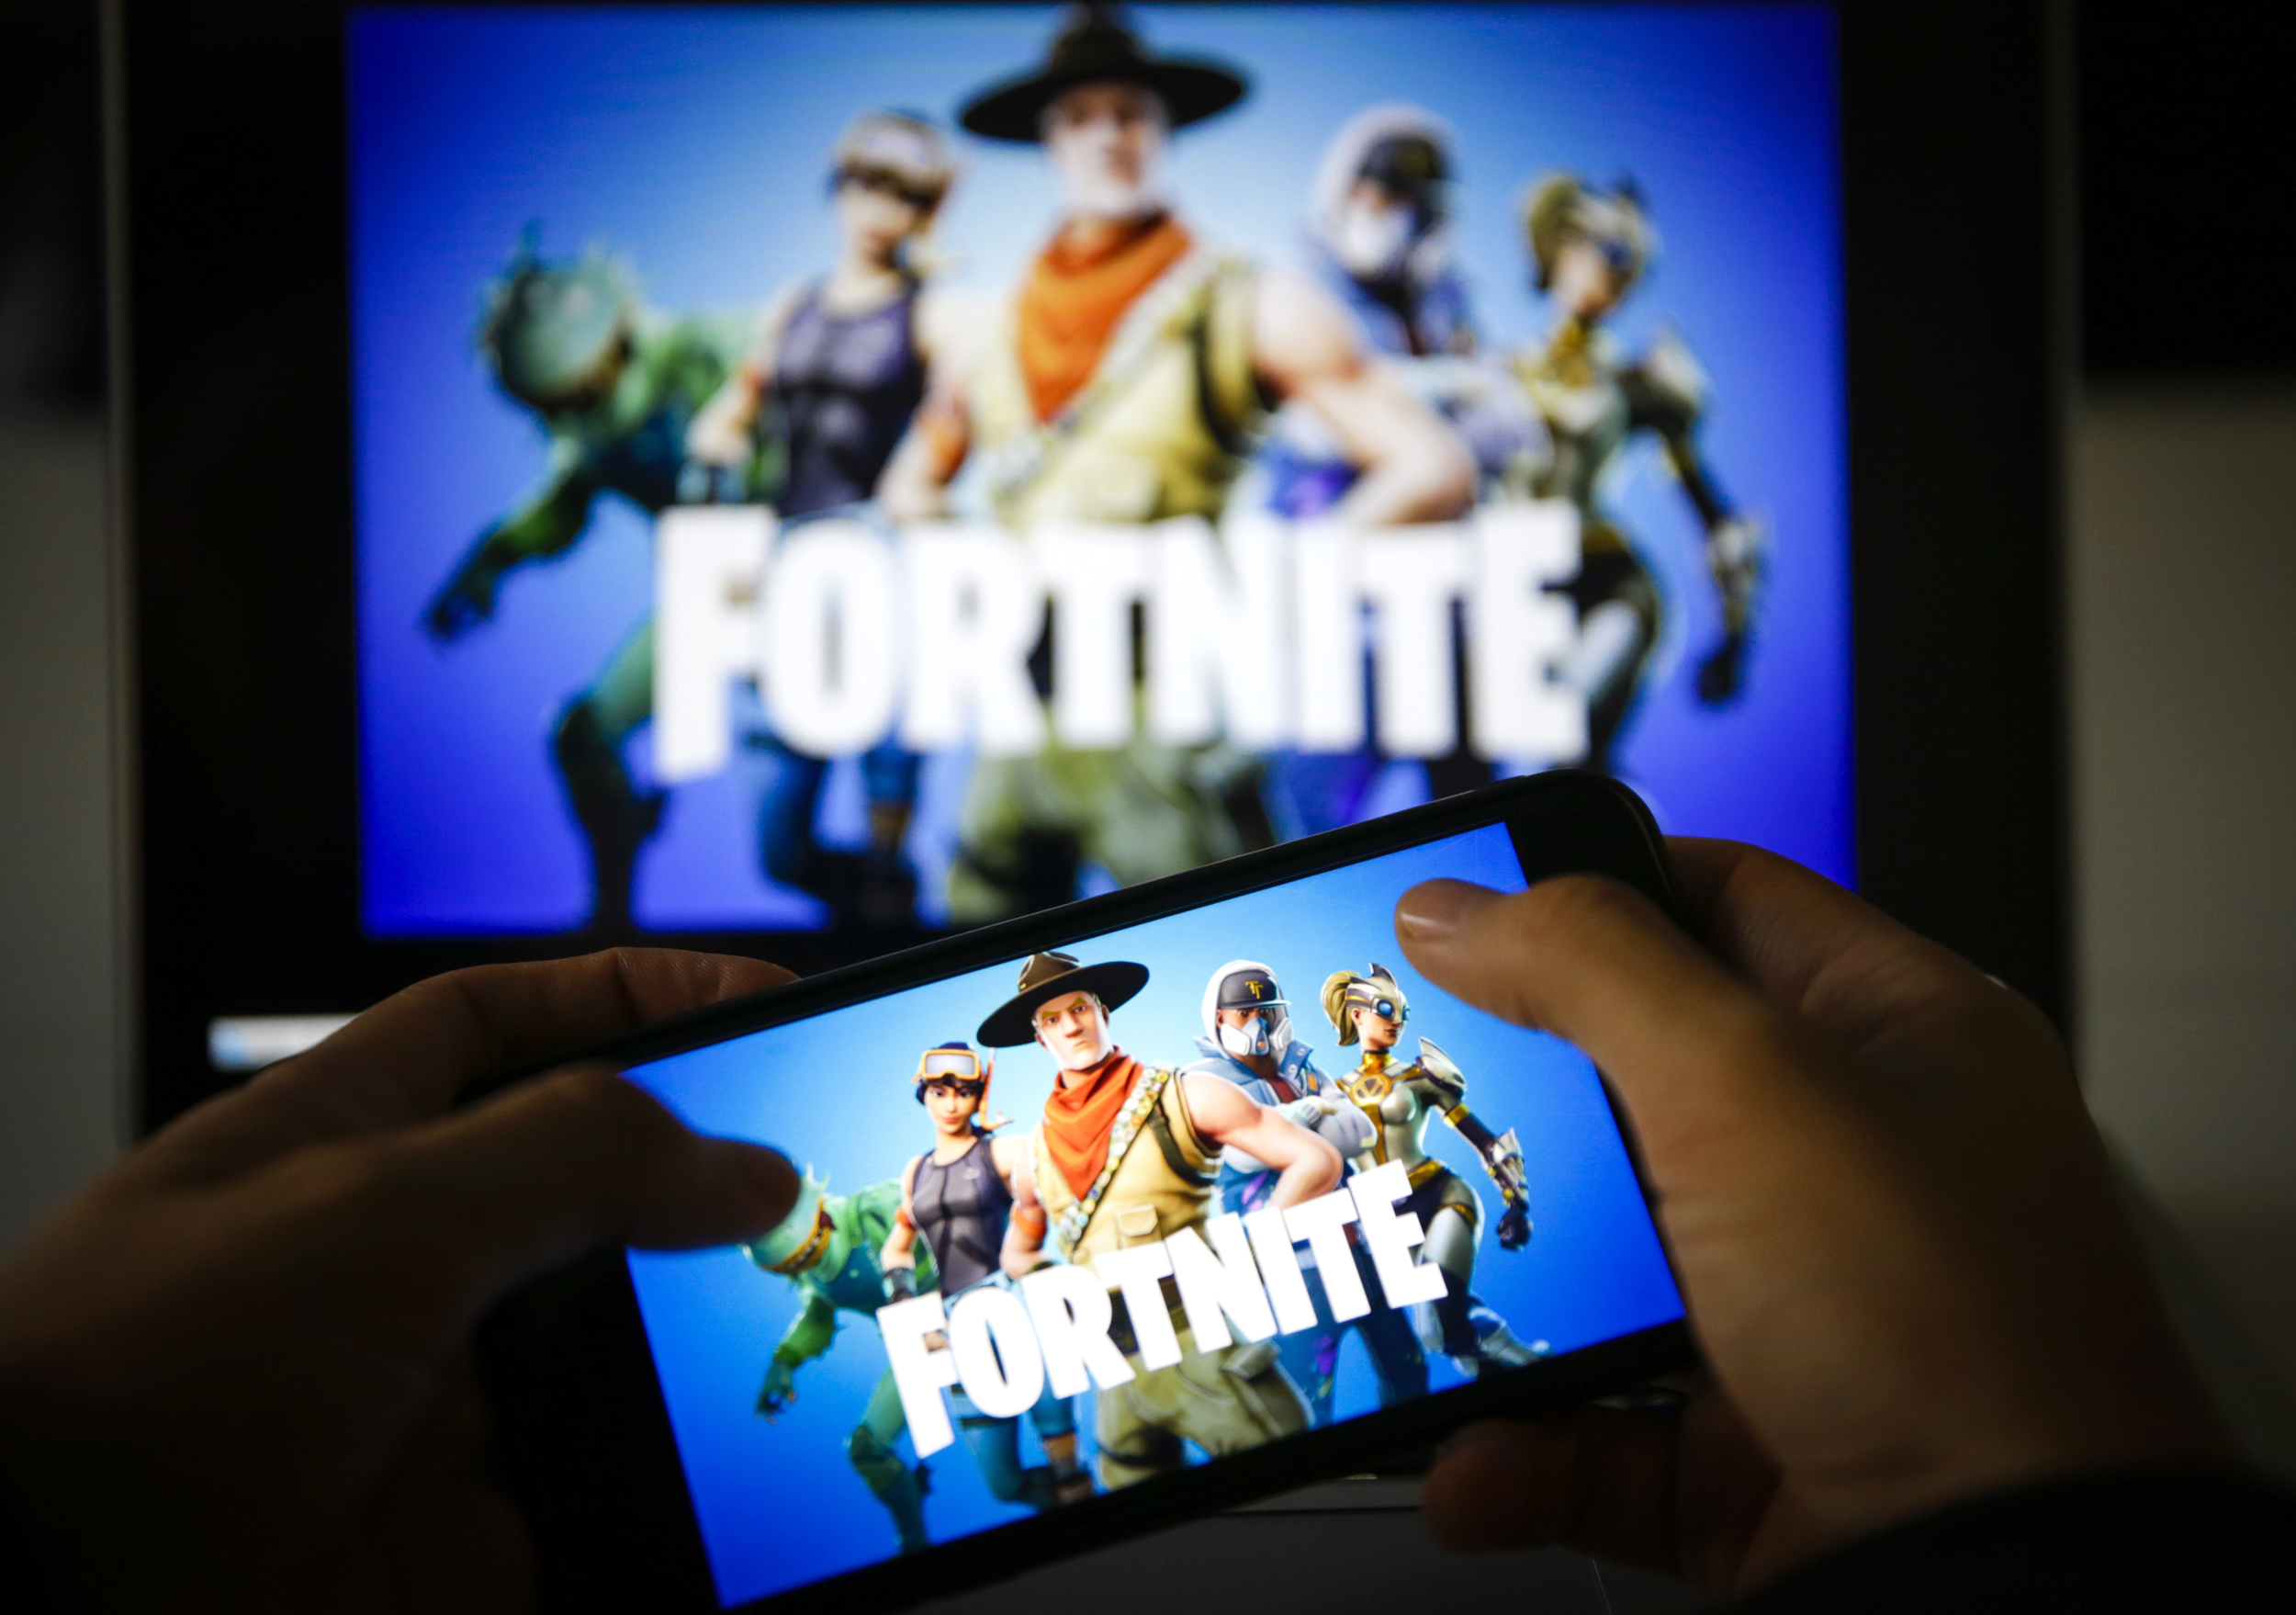 'Fortnite' maker pushes back against copyright lawsuit: 'No one can own a dance step'